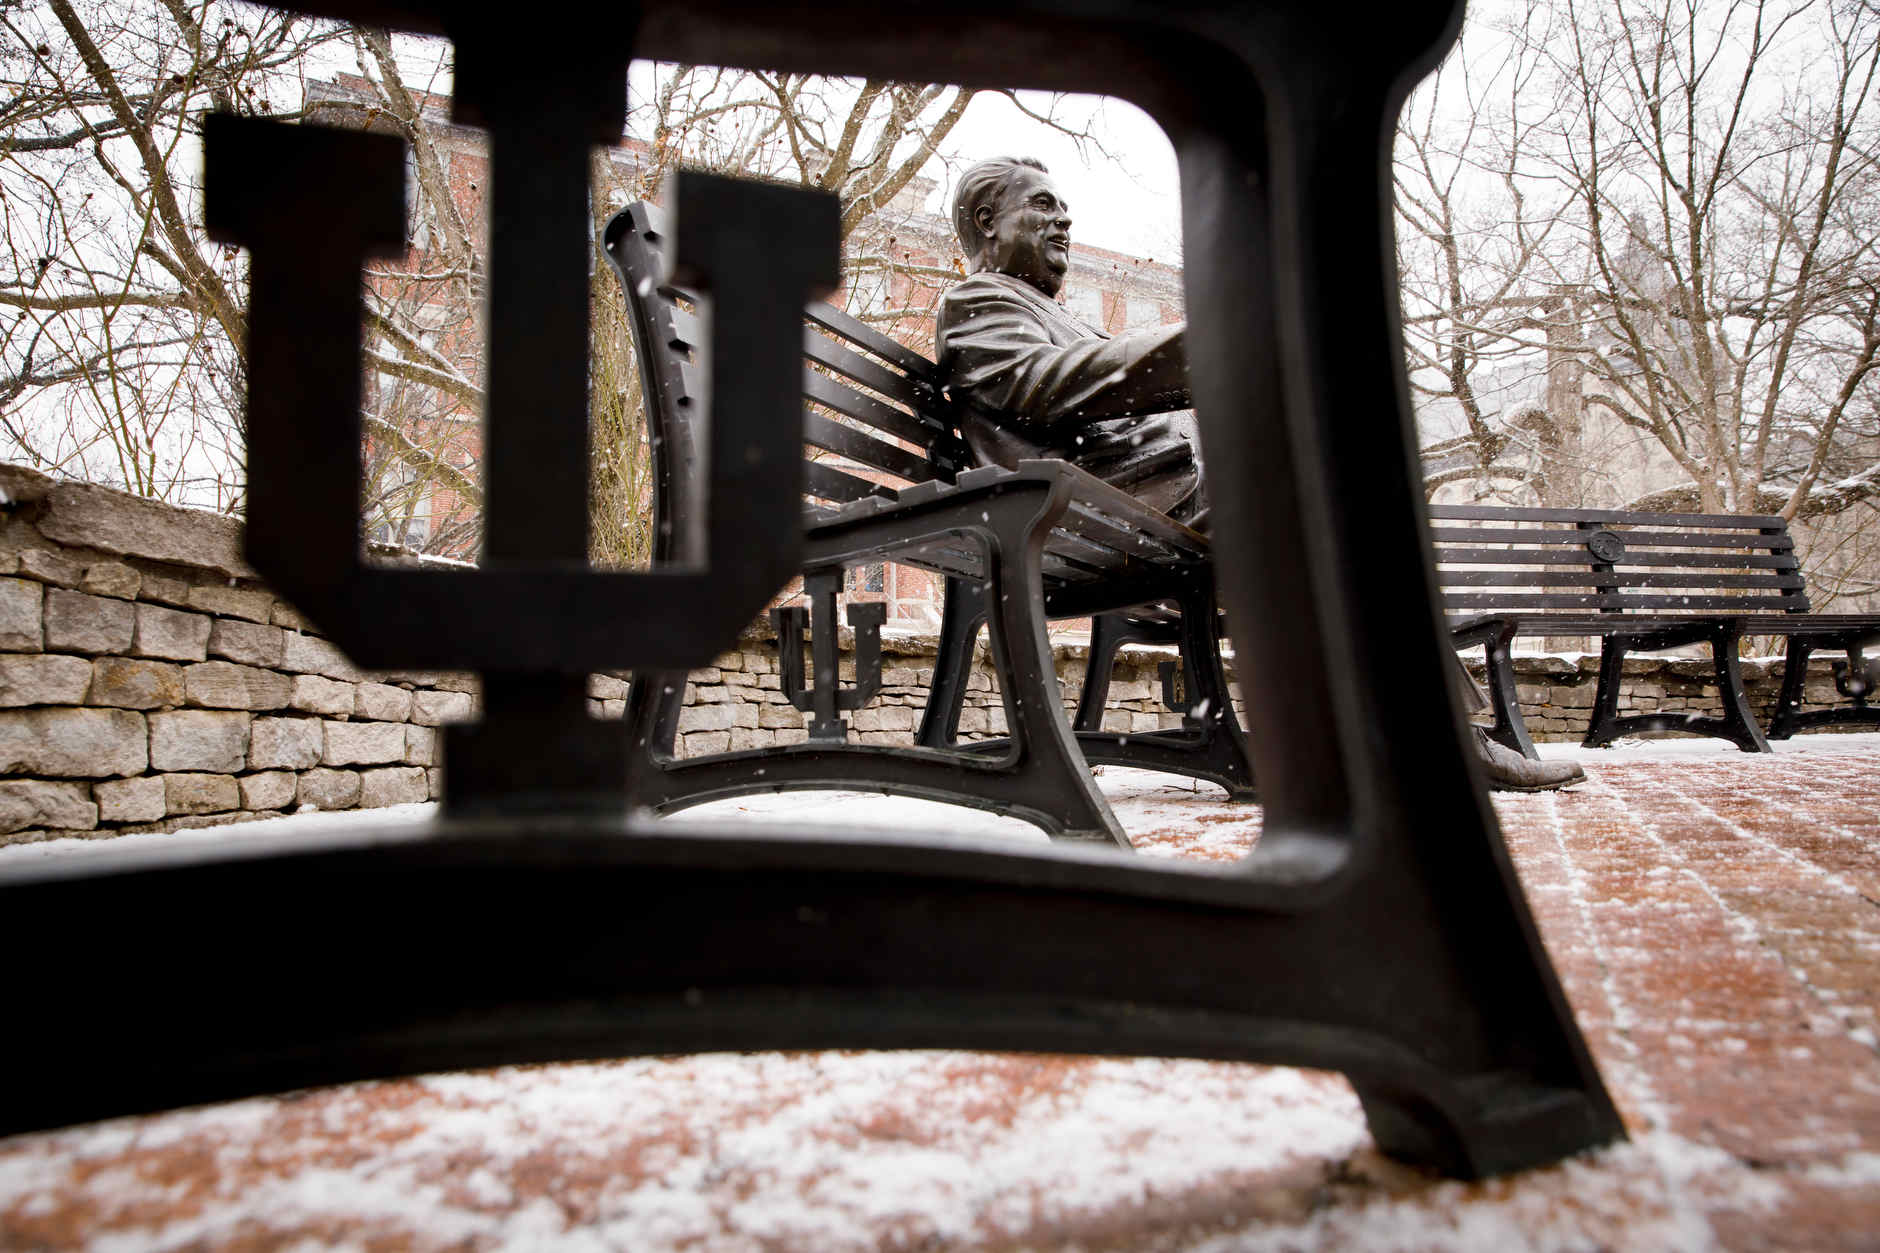 Snow falls near a sculpture of Herman B Wells in the Old Crescent at IU Bloomington on Thursday, March 7, 2019. (James Brosher/Indiana University)